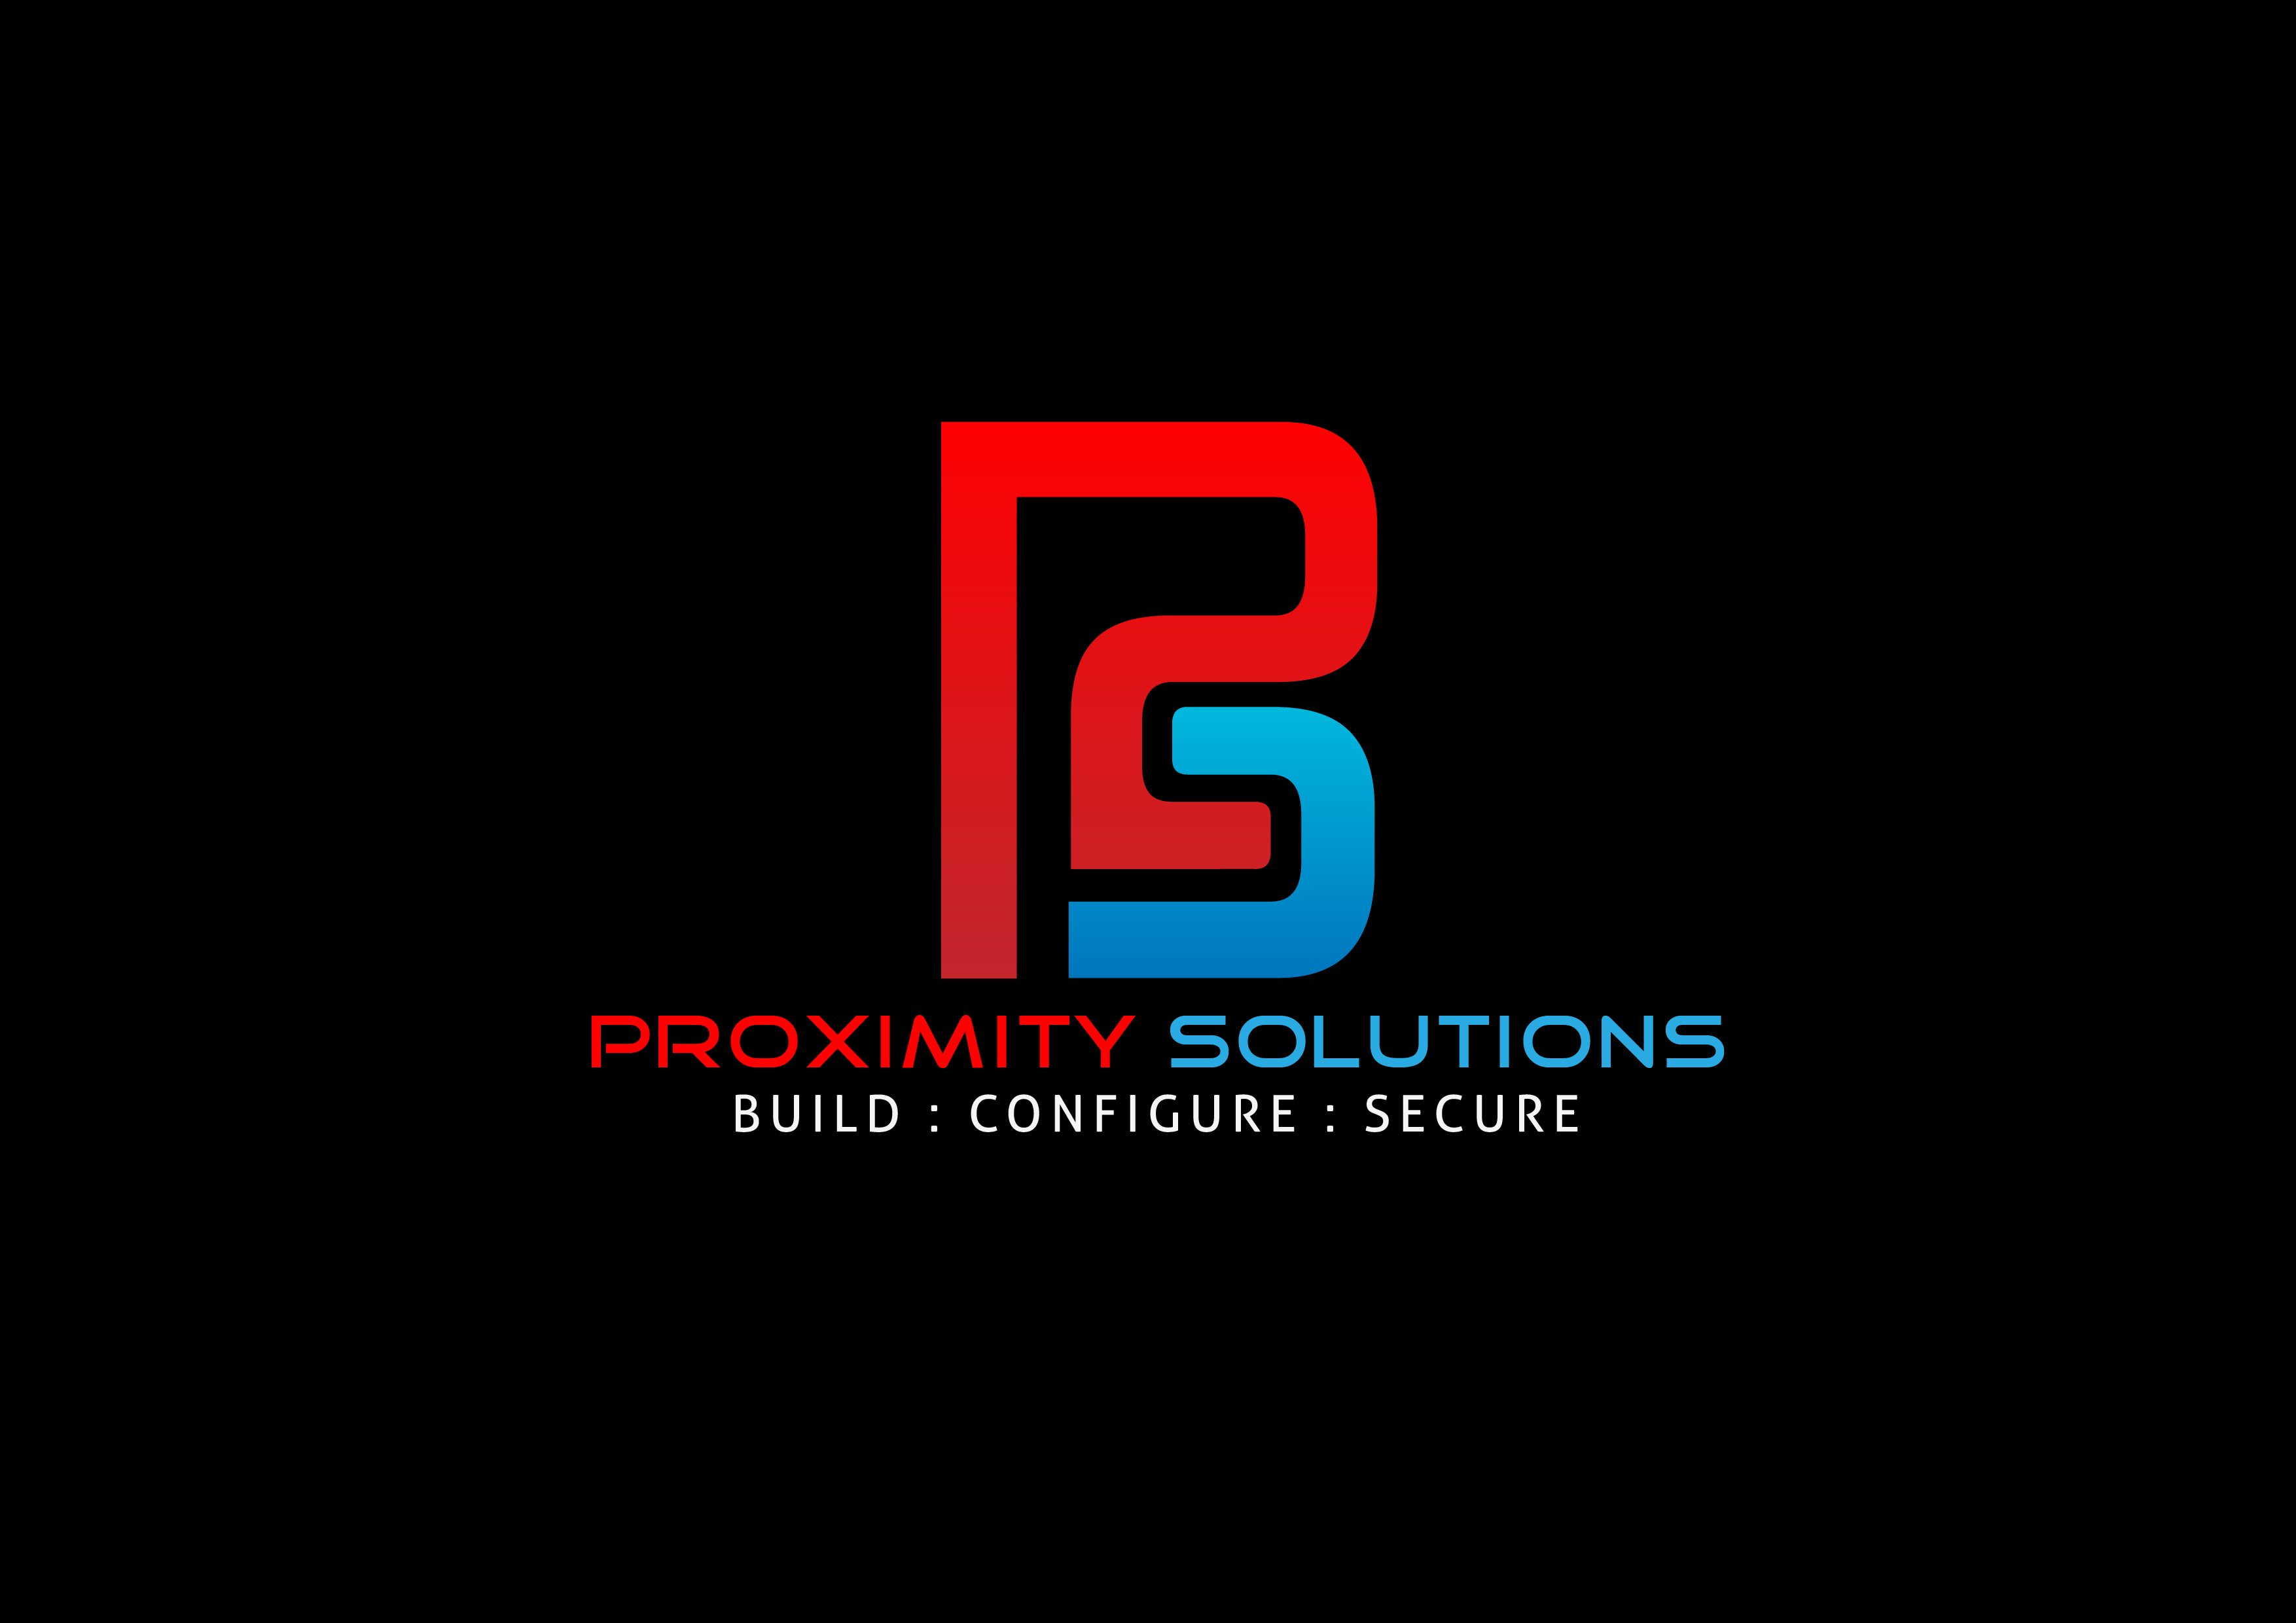 Logo Design by 3draw - Entry No. 37 in the Logo Design Contest New Logo Design for Proximity Solutions.